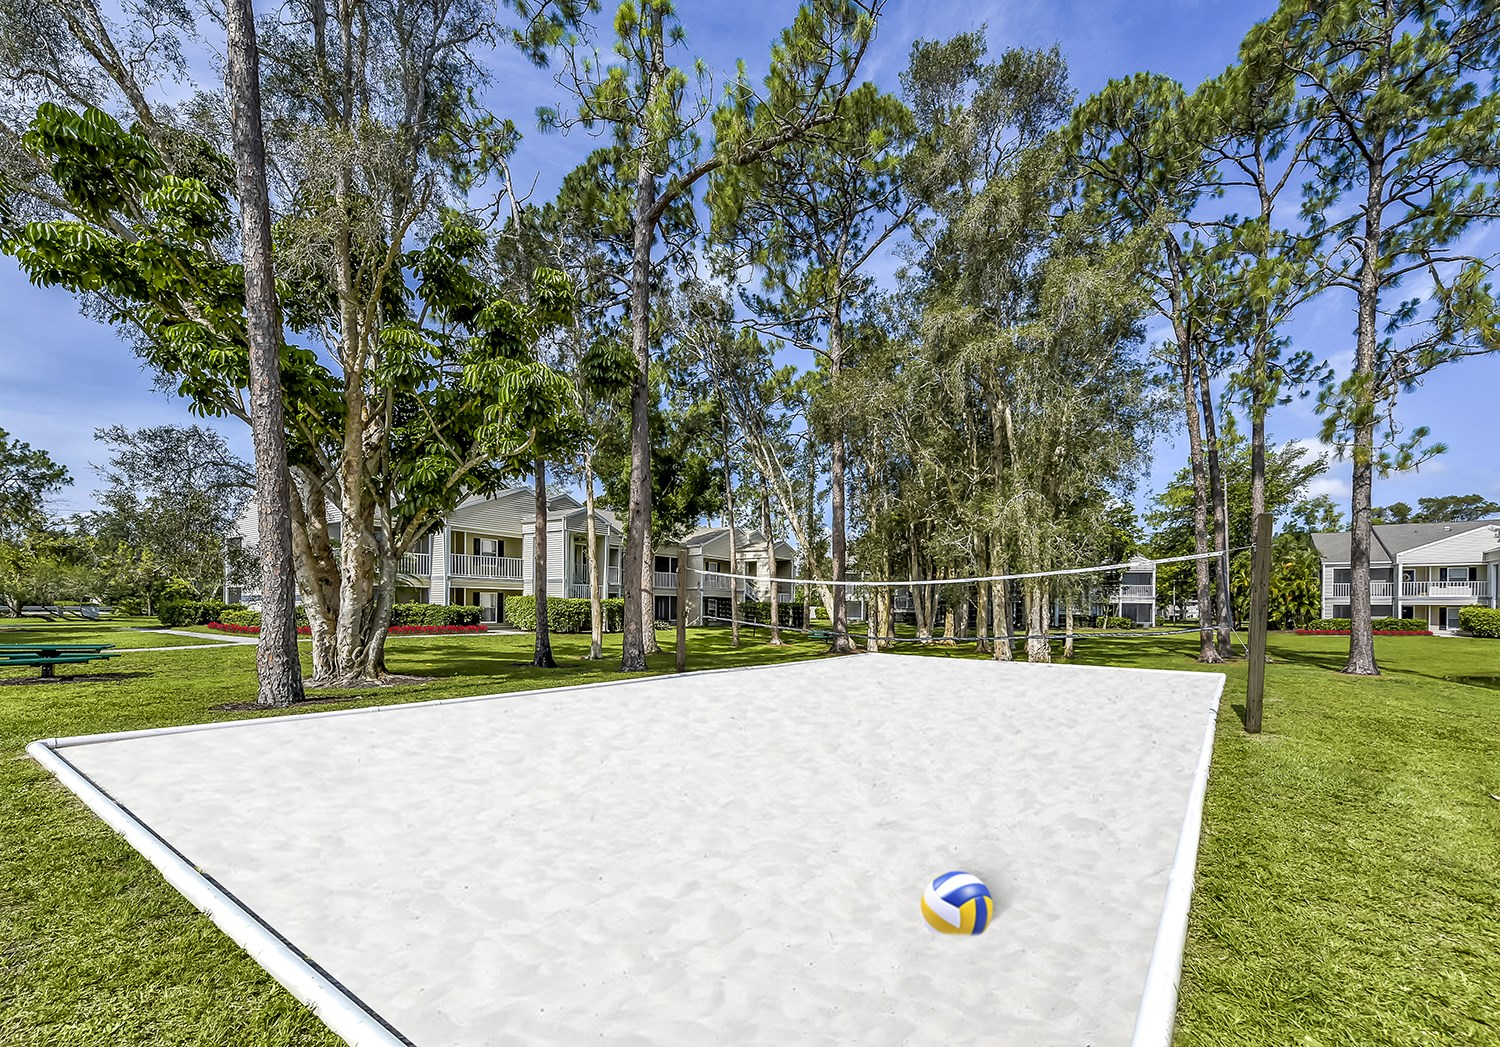 Volleyball Court at Brantley Pines Apartments in Ft. Myers, FL